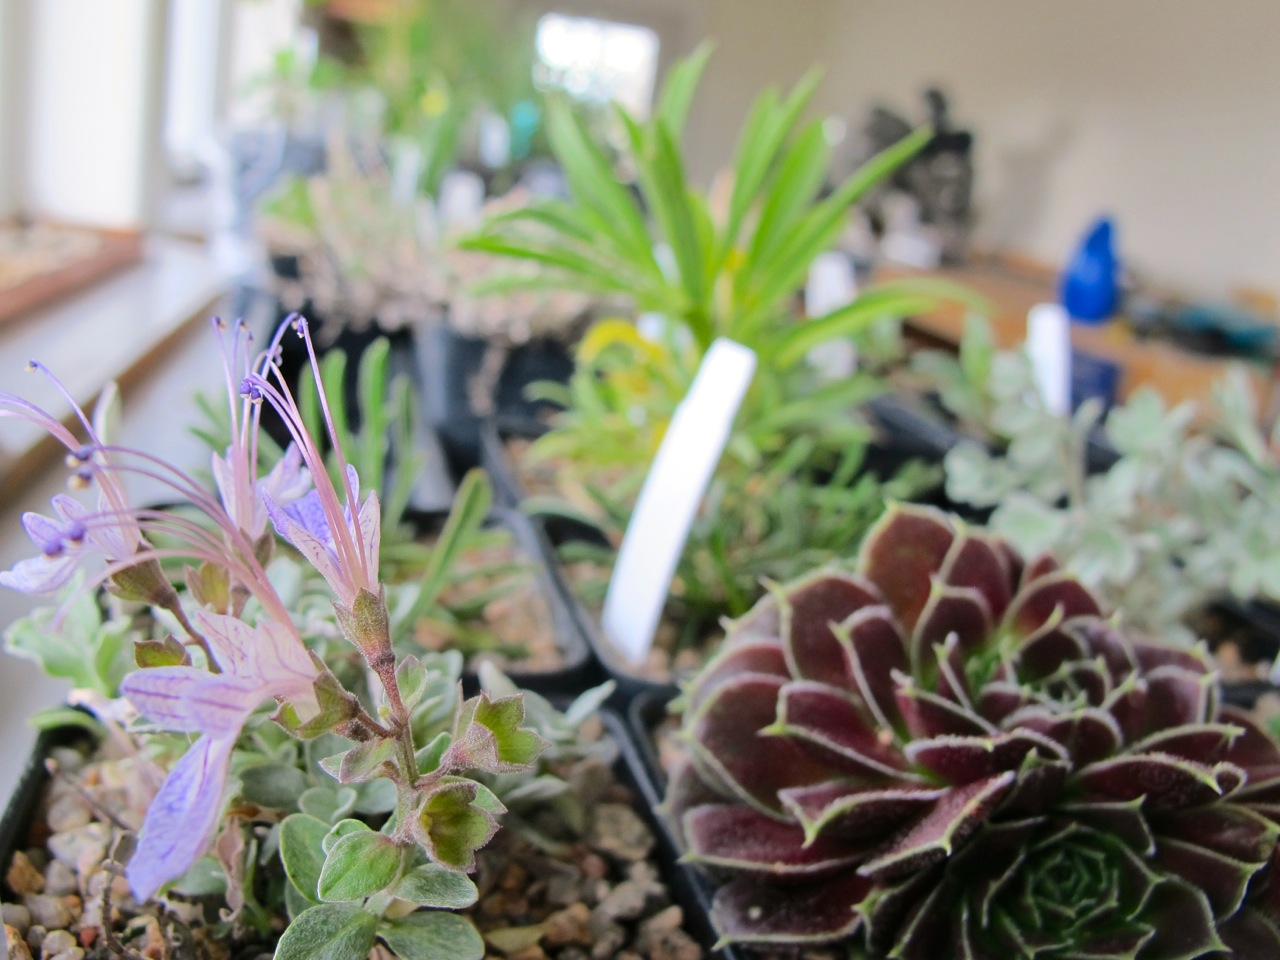 Teucrinum, a succulent, astragalus and other rock garden plants wait their turn to be planted.